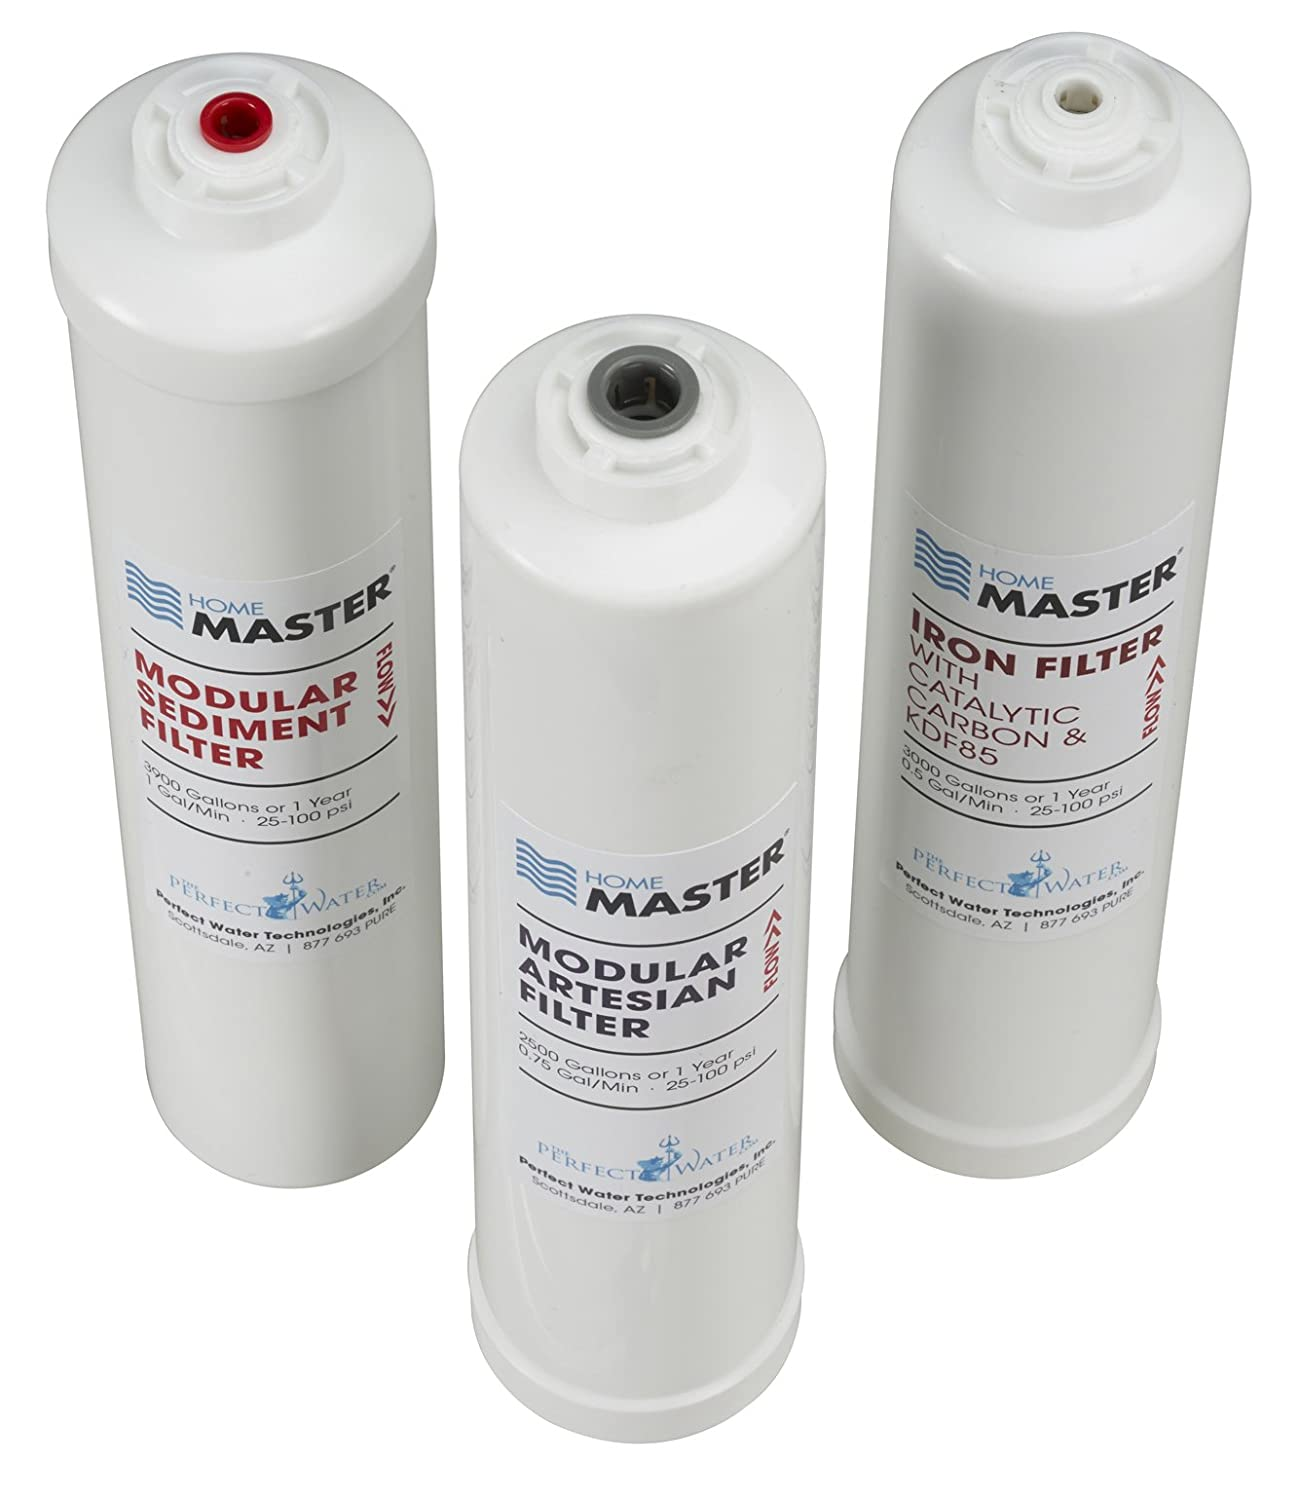 Home Master Iset-TMA-HGP Artesian HydroGardener Pro Replacement Water Filter Change Set, White